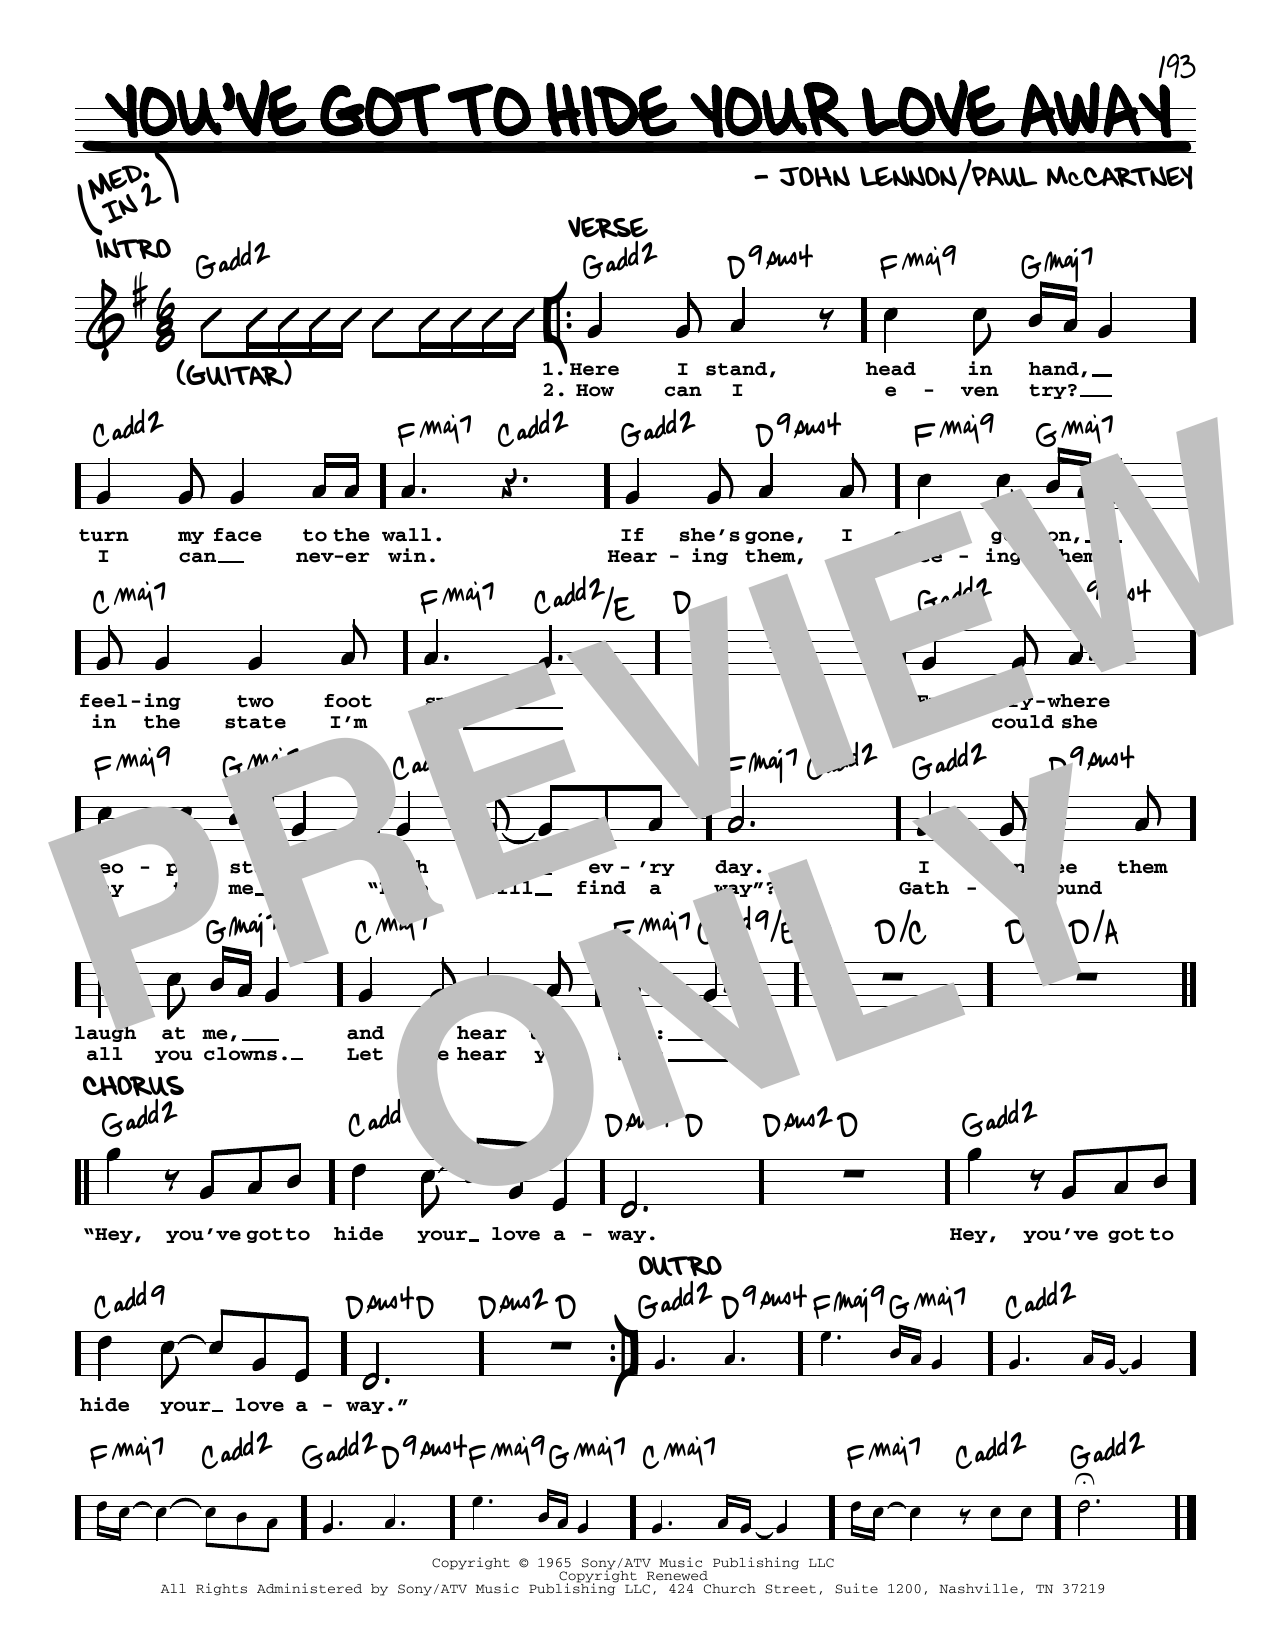 The Beatles You've Got To Hide Your Love Away [Jazz version] Sheet Music  Notes, Chords   Download Printable Real Book – Melody, Lyrics & Chords PDF  ...